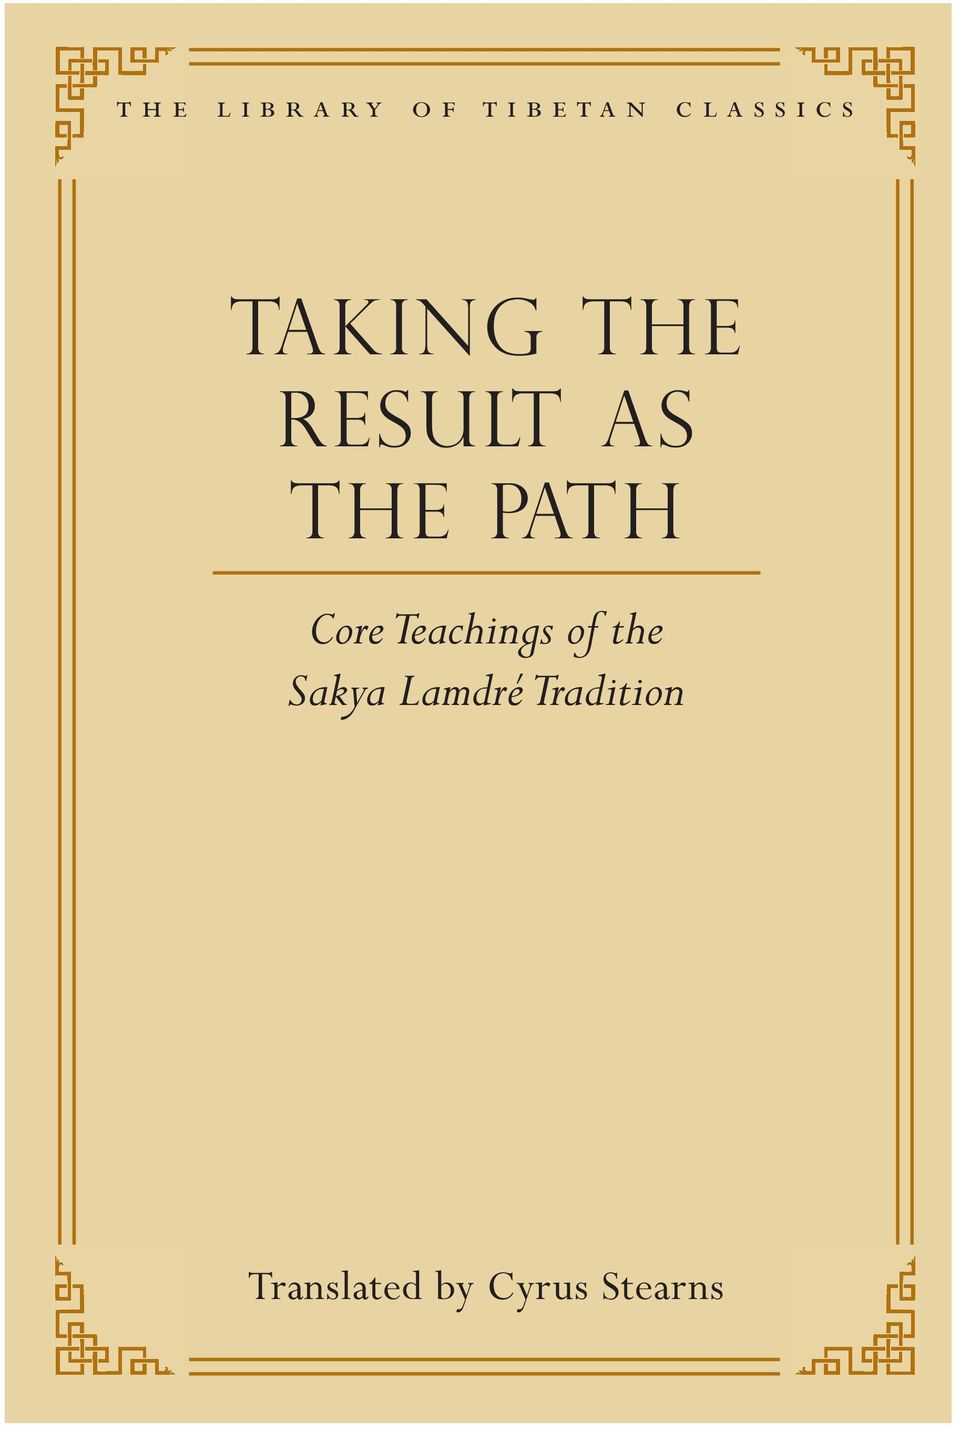 the path Core Teachings of the Sakya